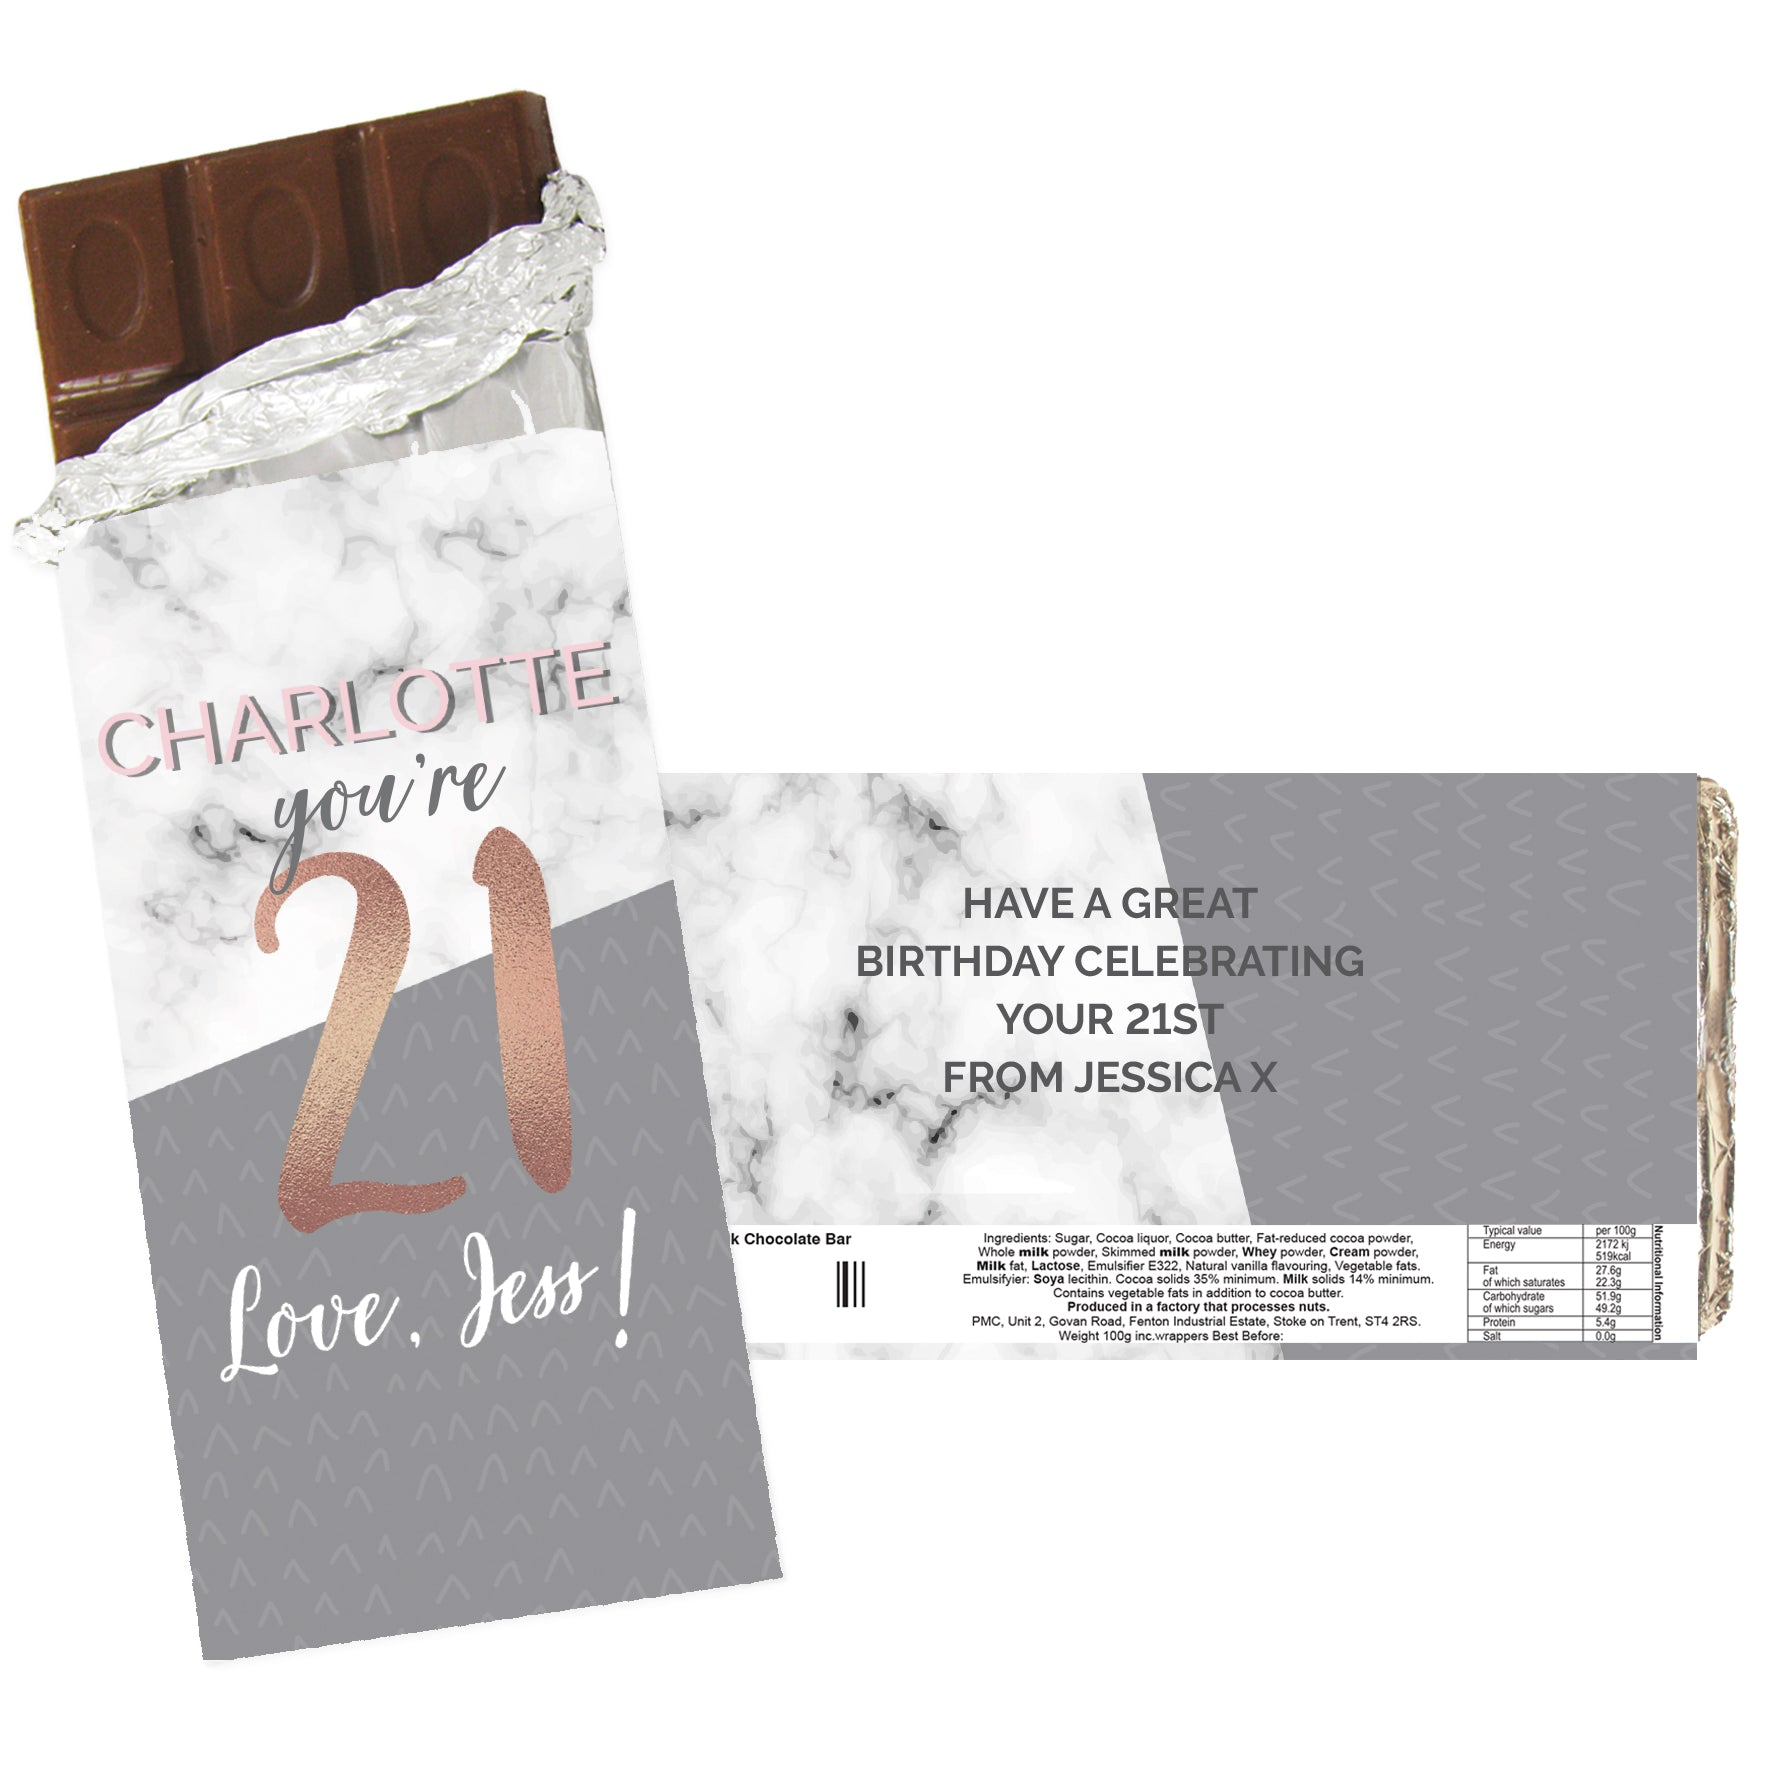 Personalised Birthday Marble and Rose Gold Chocolate Bar, Sweets & Chocolate - Image 2